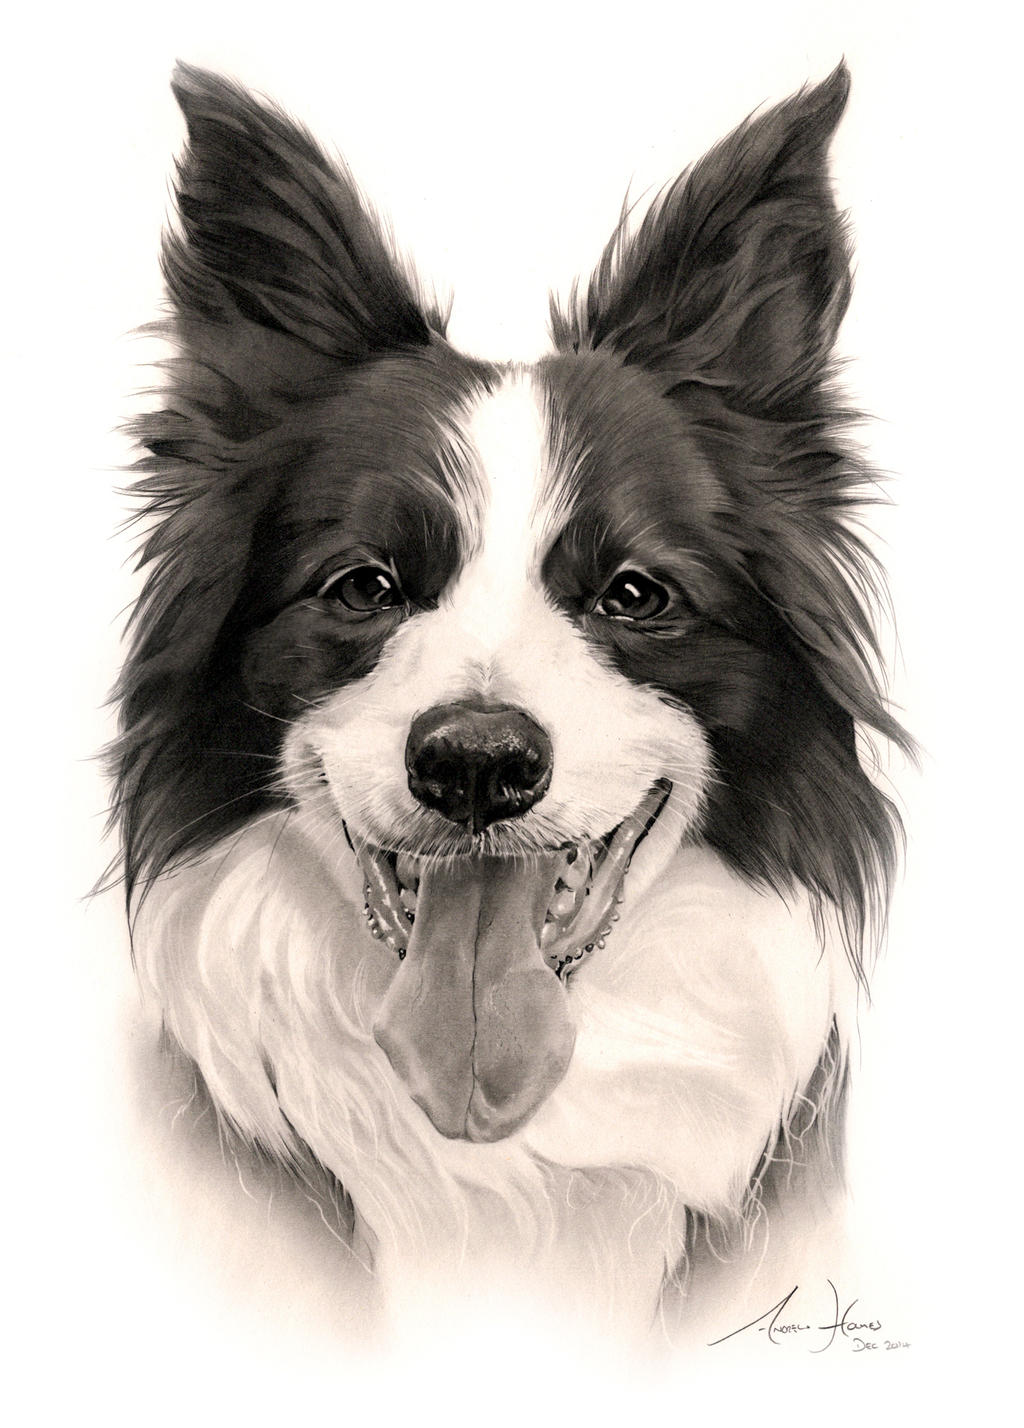 Commission - Border Collie U0026#39;Maggie Mayu0026#39; By Captured-In-Pencil On DeviantArt